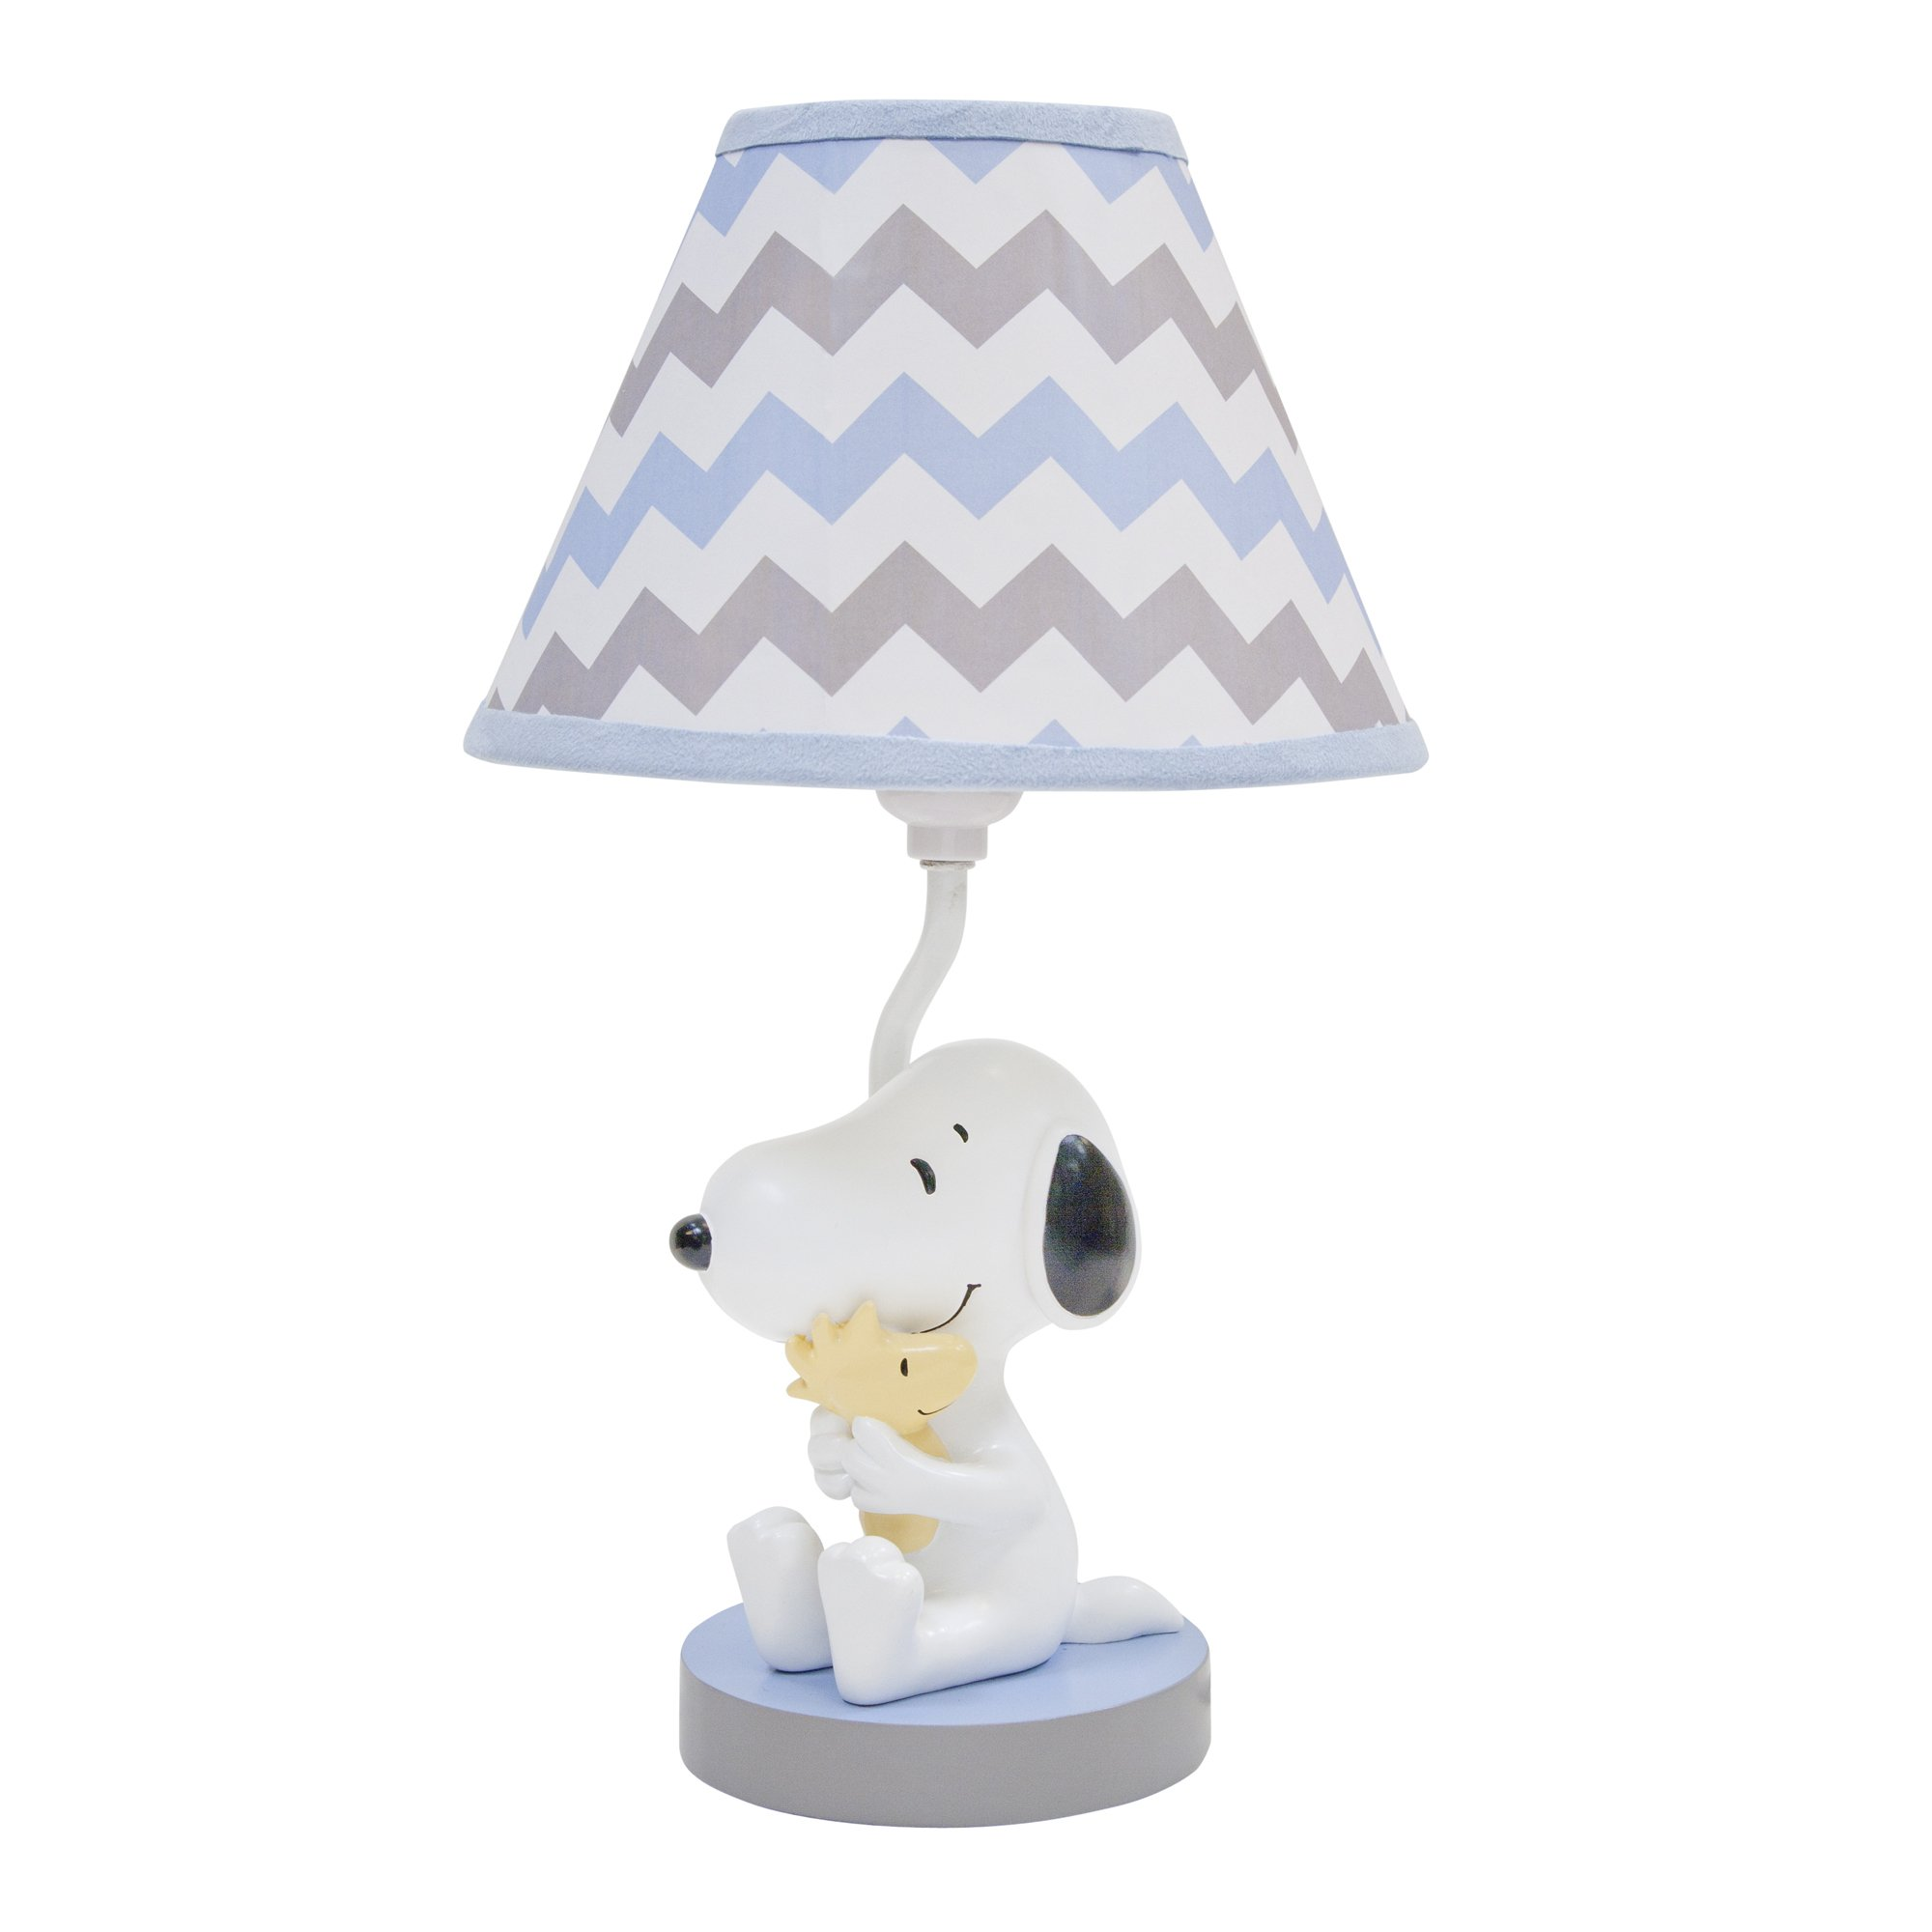 Lambs & Ivy My Little Snoopy Lamp with Shade and Bulb by Lambs & Ivy